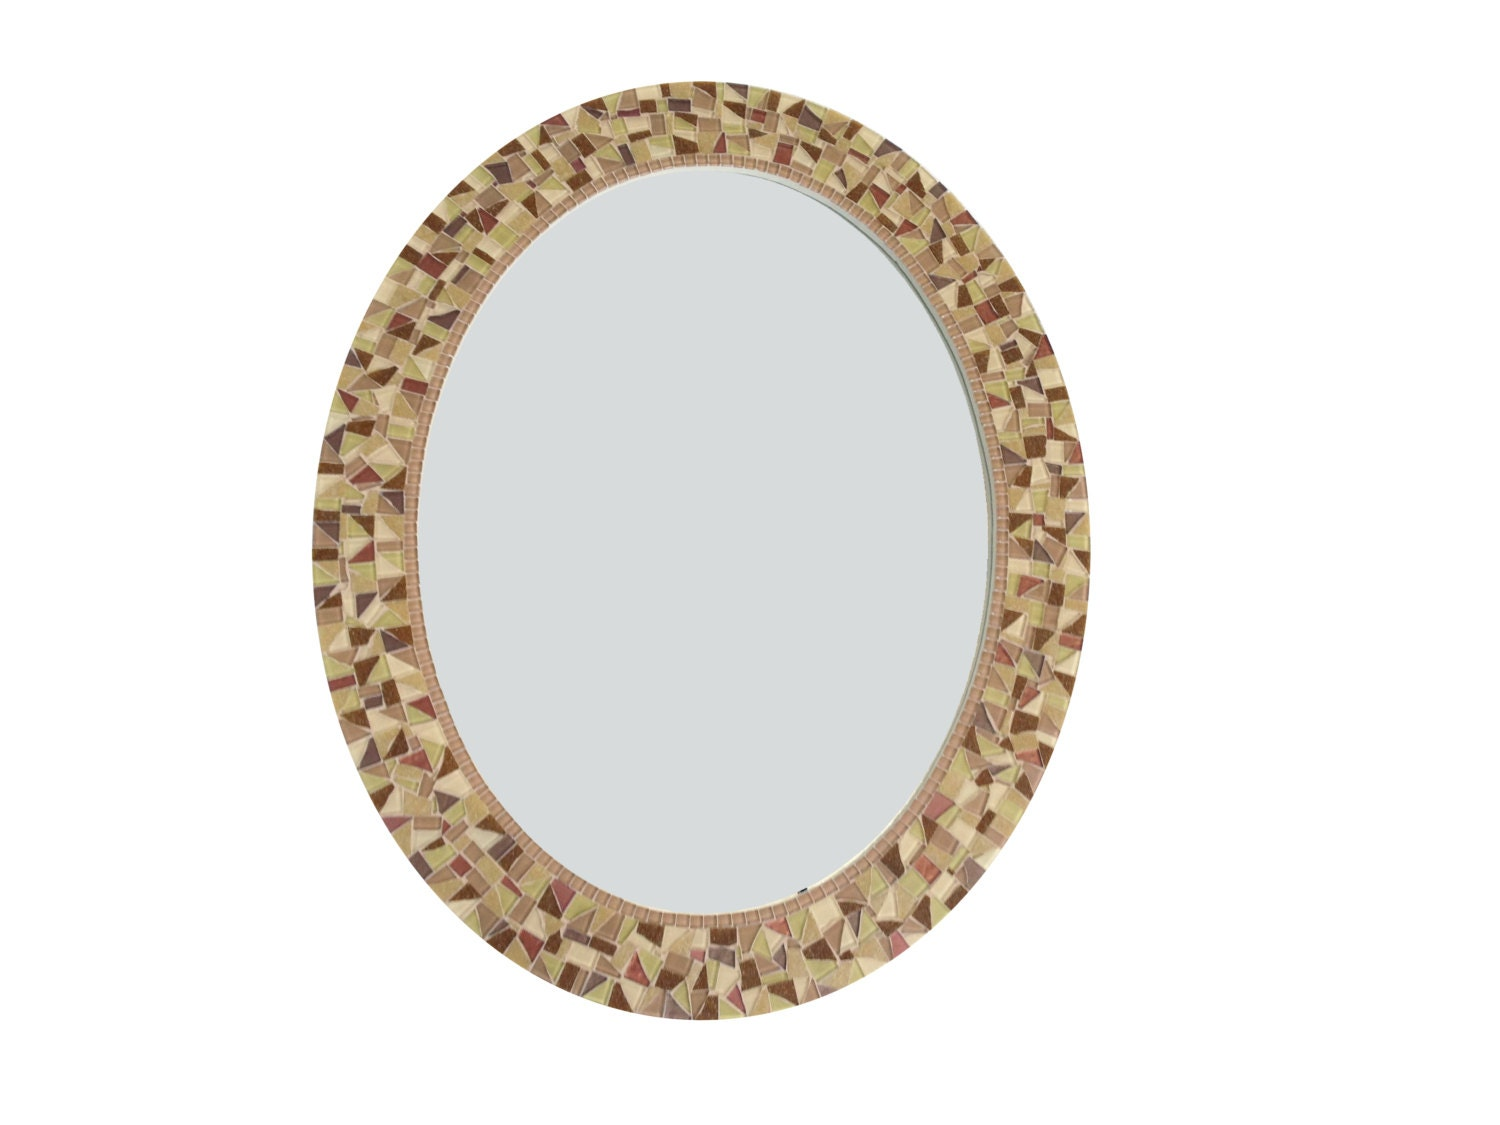 Brown wall mirror oval mosaic mirror decorative mirror for Fancy oval mirror